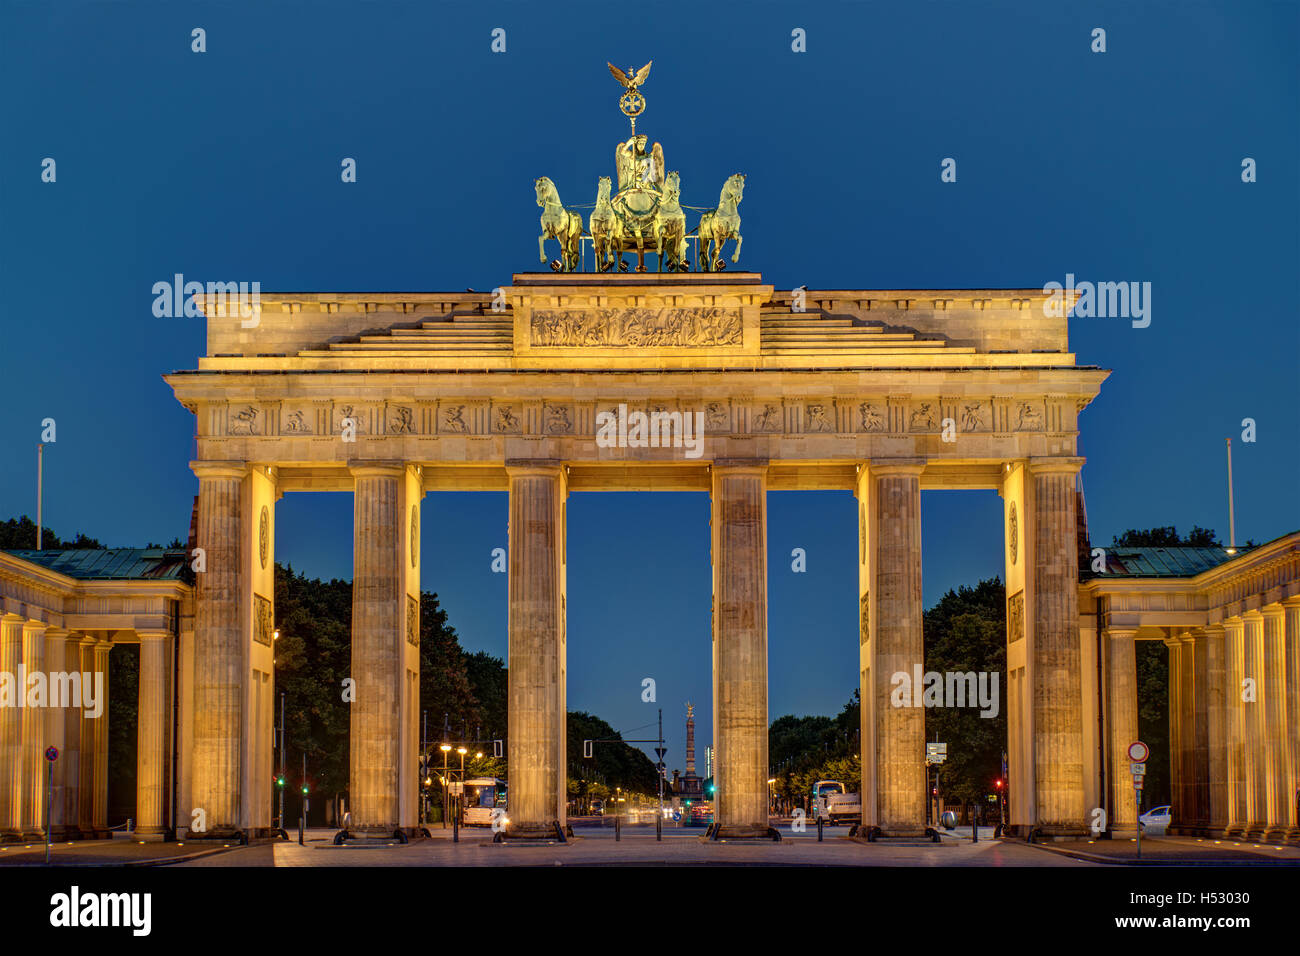 Night view of the Brandenburger Tor in Berlin - Stock Image